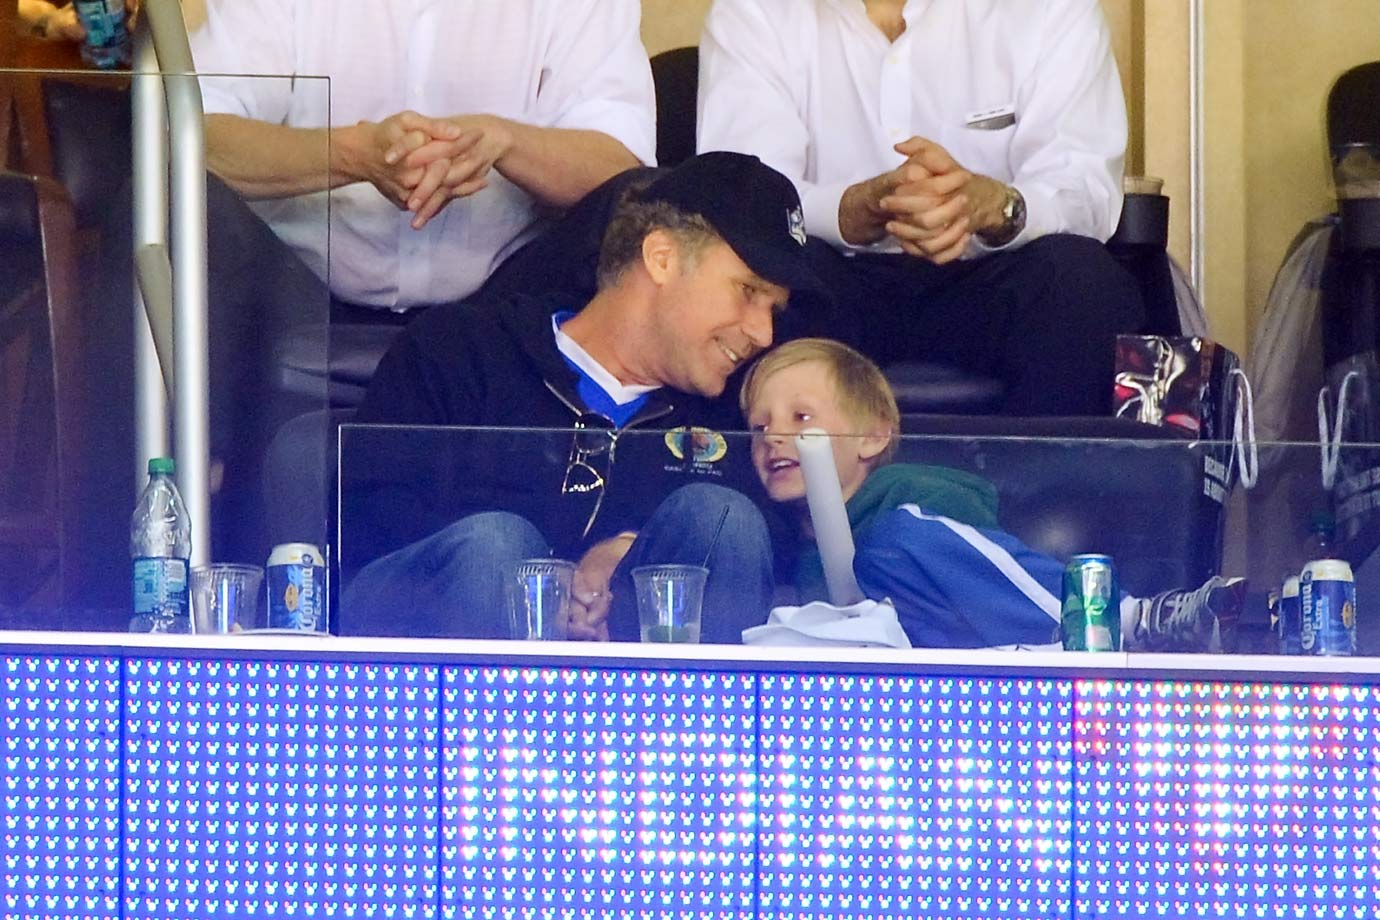 Will Ferrell and his son Magnus attend Game Three of the Stanley Cup Final between the Los Angeles Kings and New Jersey Devils on June 4, 2012 at Staples Center in Los Angeles.